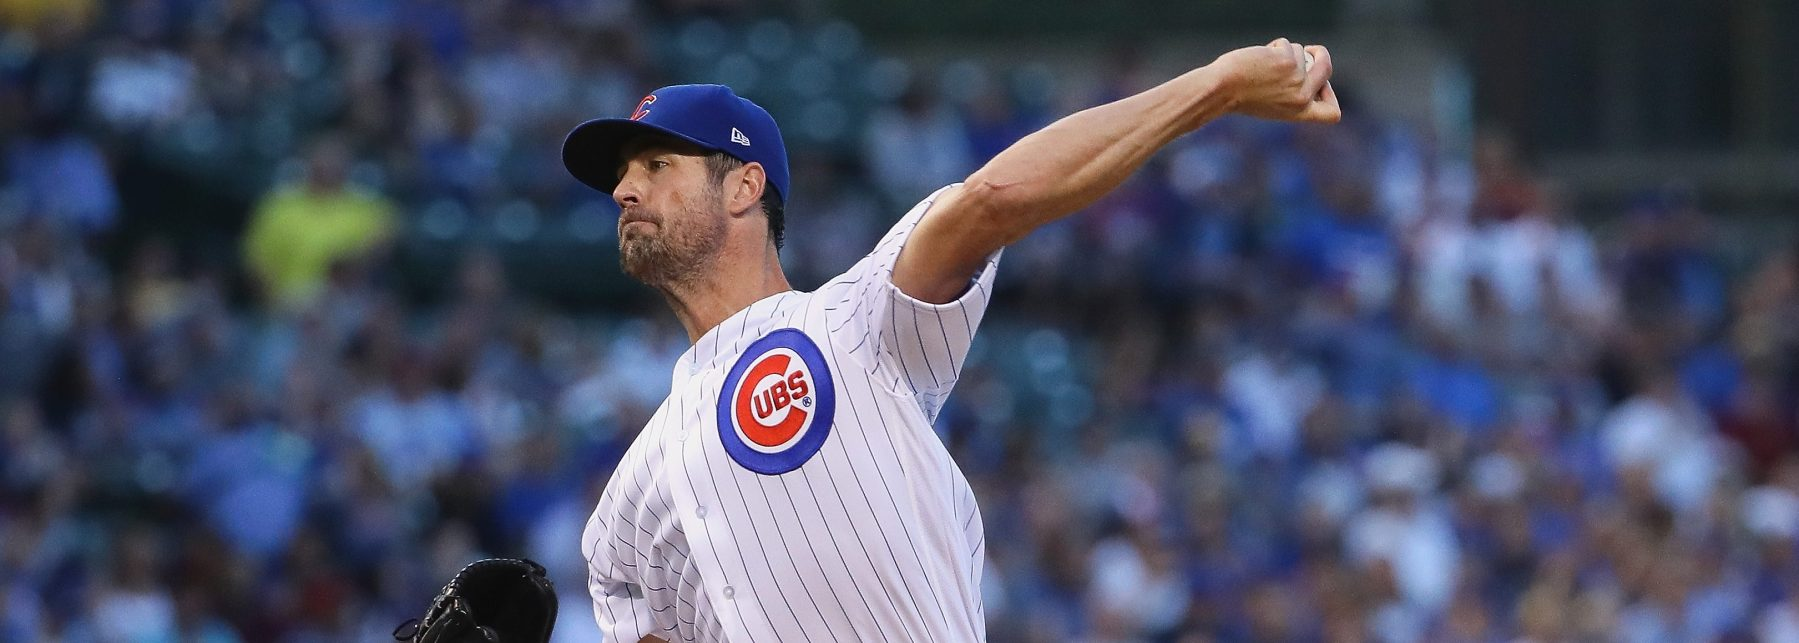 Cole Hamels #35 of the Chicago Cubs pitches on his way to a complete game win over the Cincinnati Reds at Wrigley Field on August 23, 2018 in Chicago, Illinois. (Photo by Jonathan Daniel/Getty Images)